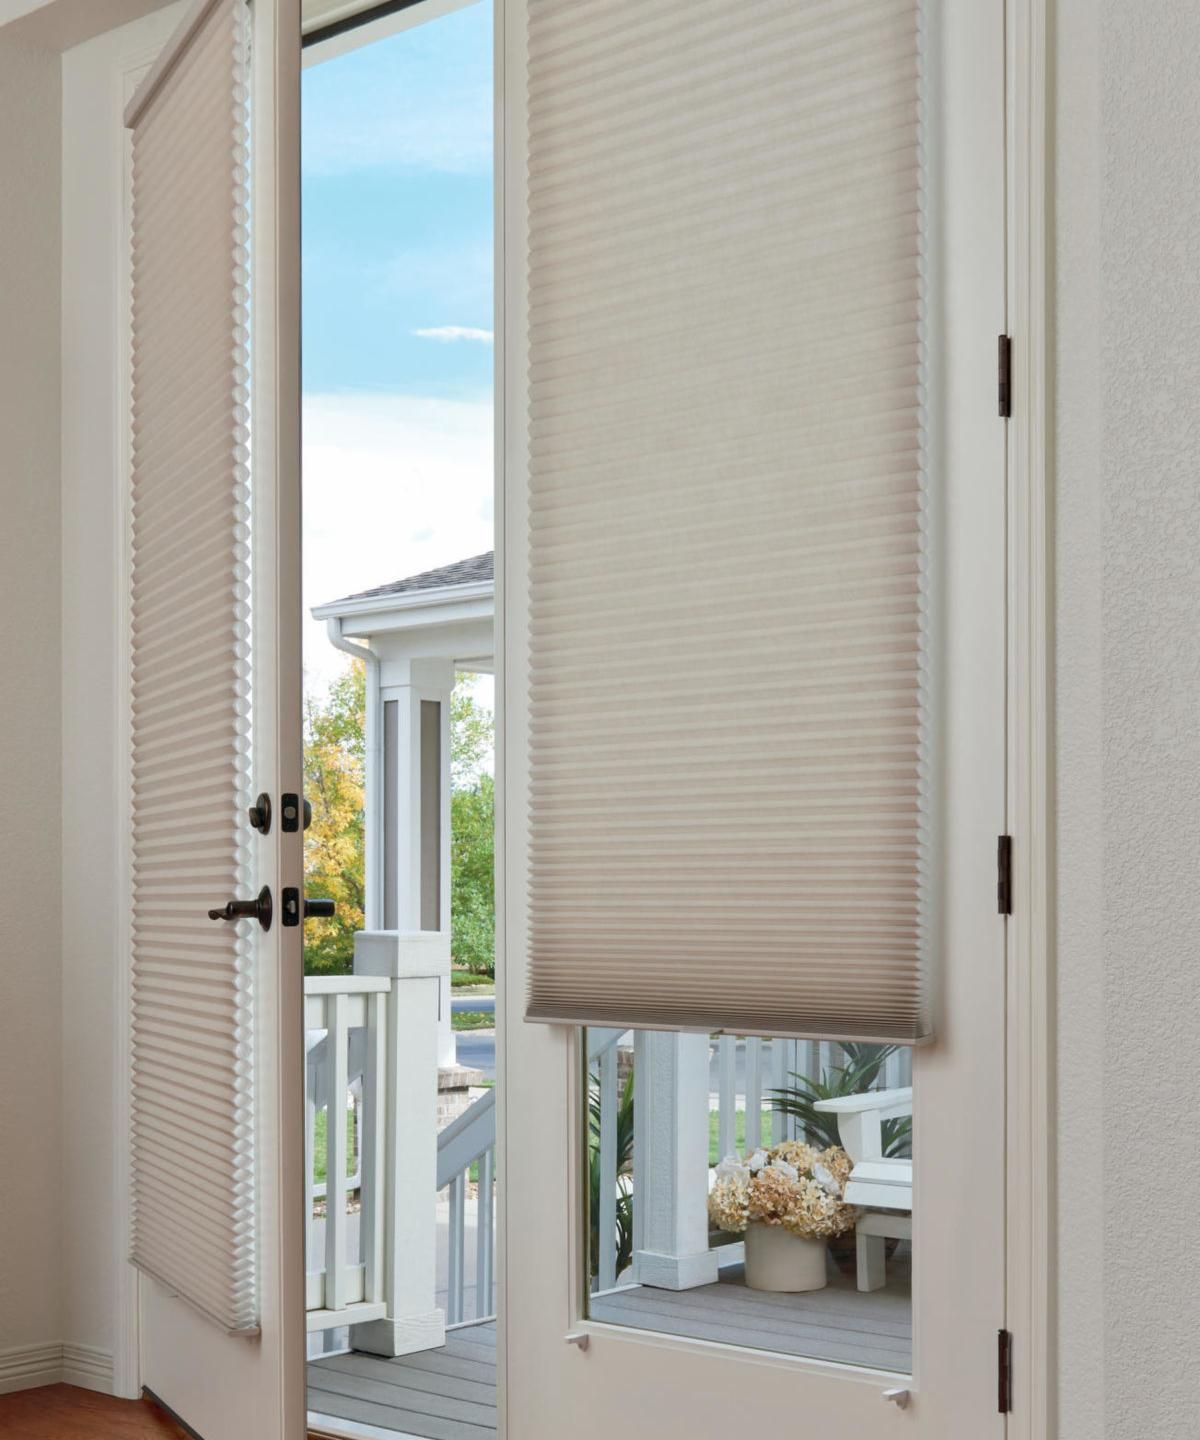 These Duette Honeycomb Shades In Birch Bark Are The Original Cellular Shades Specifica Door Window Treatments Glass Door Coverings Sliding Glass Door Window